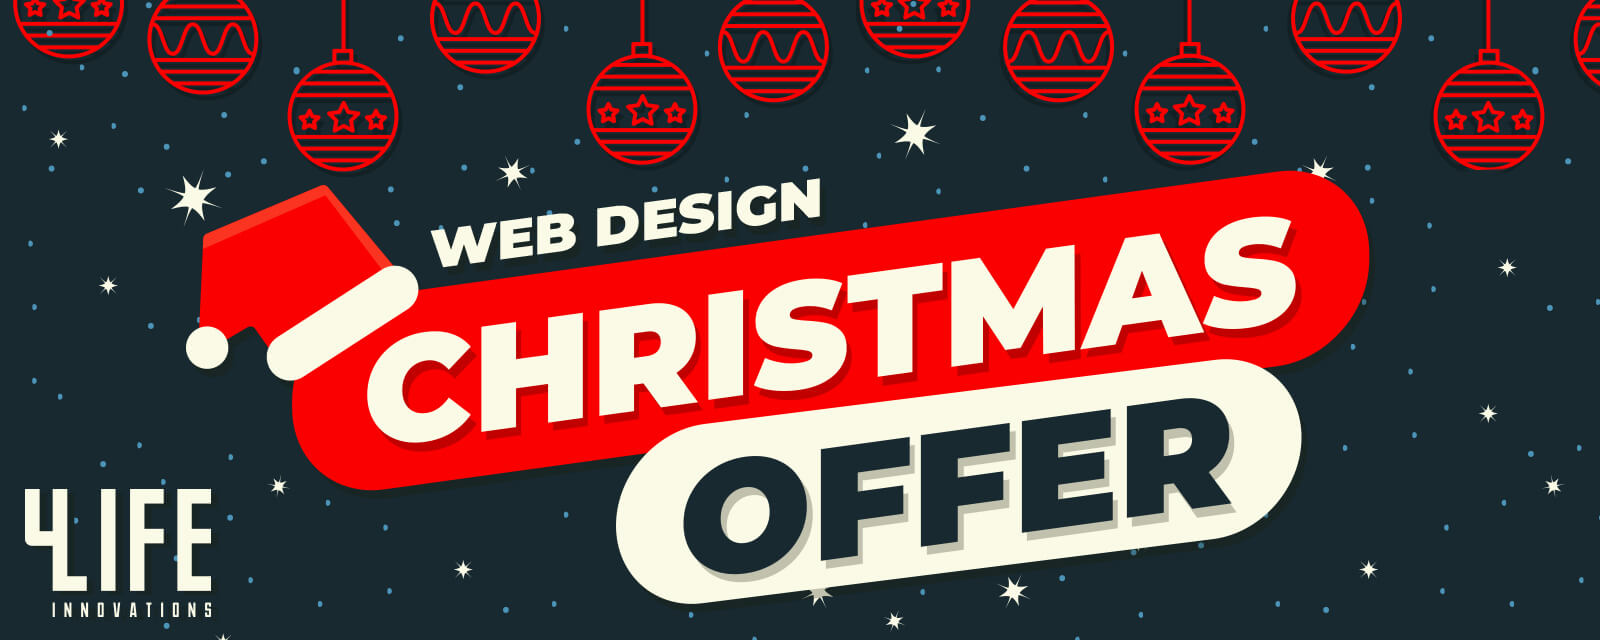 Christmas Web Design Offers